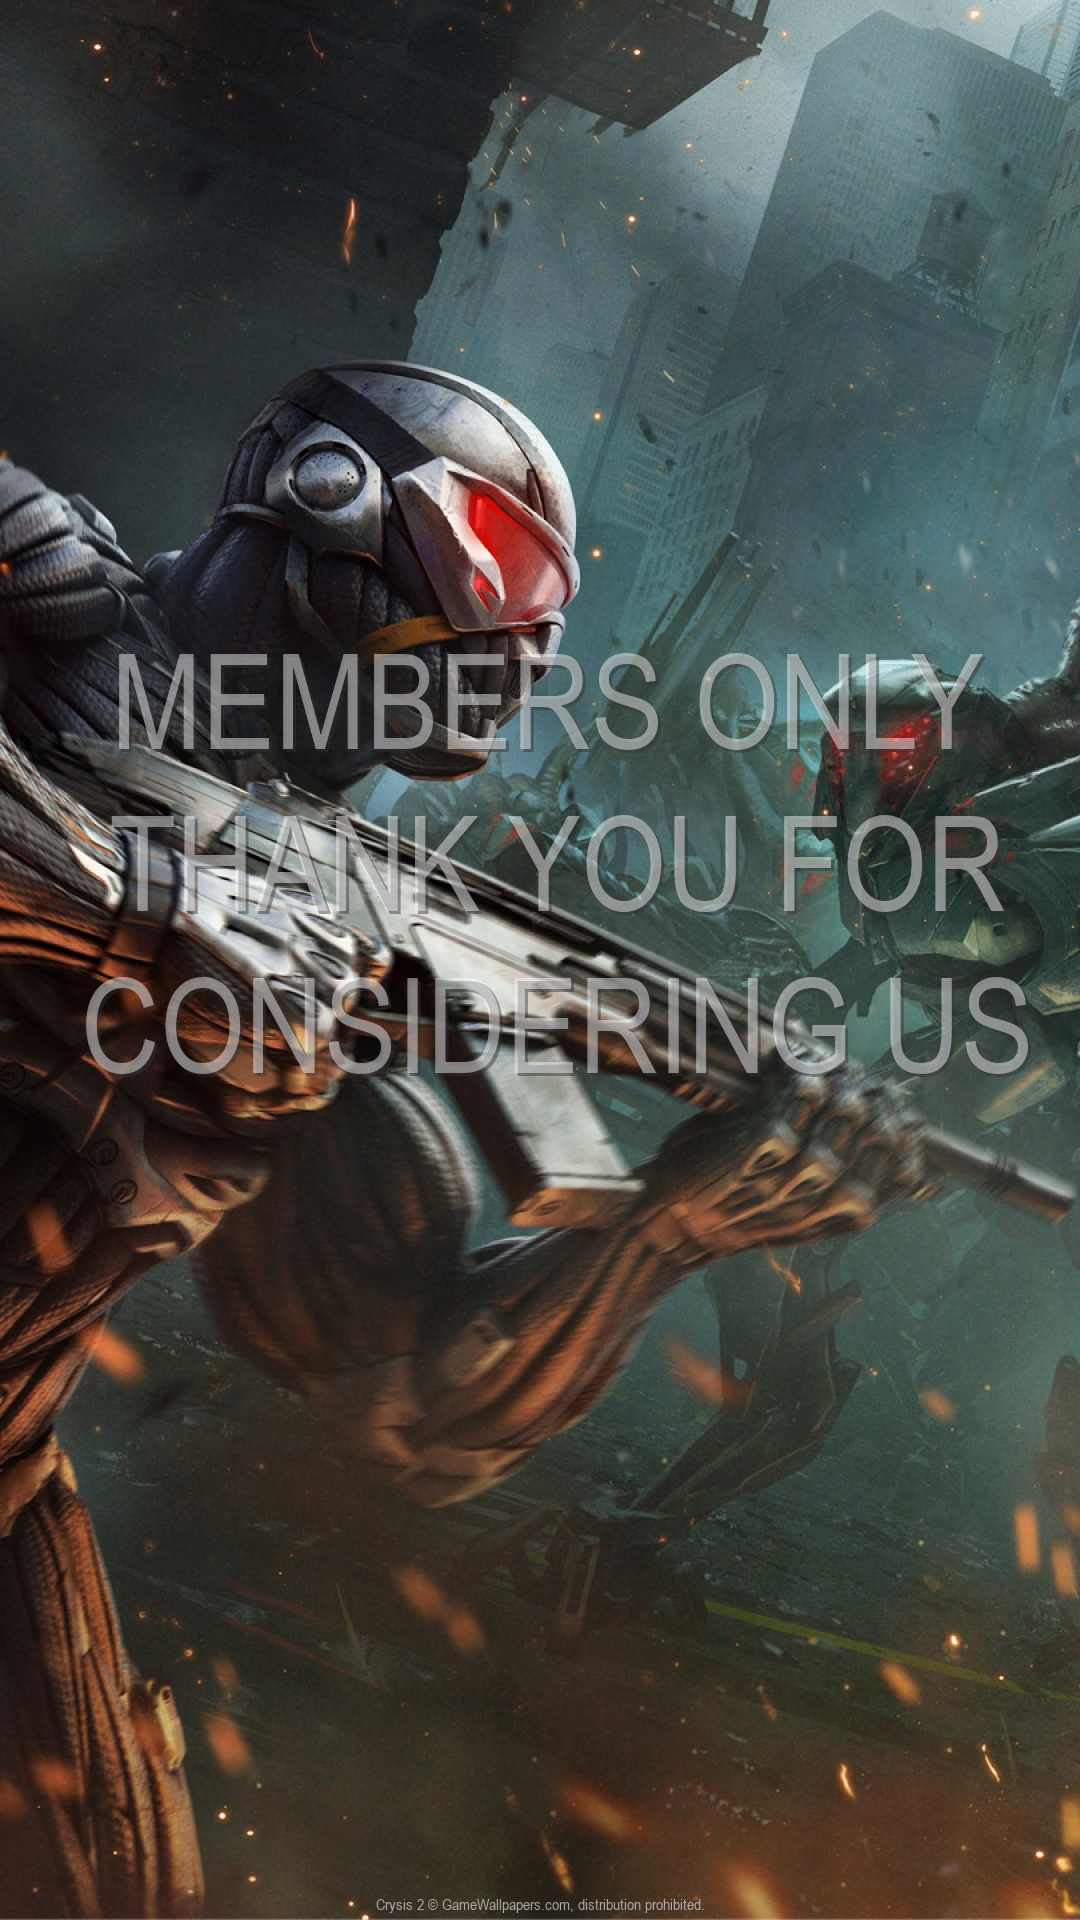 Crysis 2 1920x1080 Mobile wallpaper or background 12